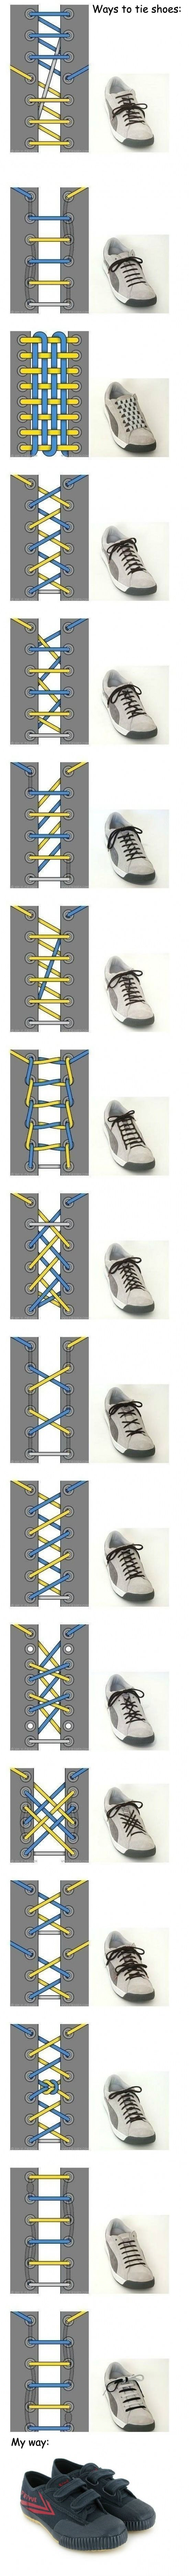 Several ways to tie shoes. I have to try some of these (except that